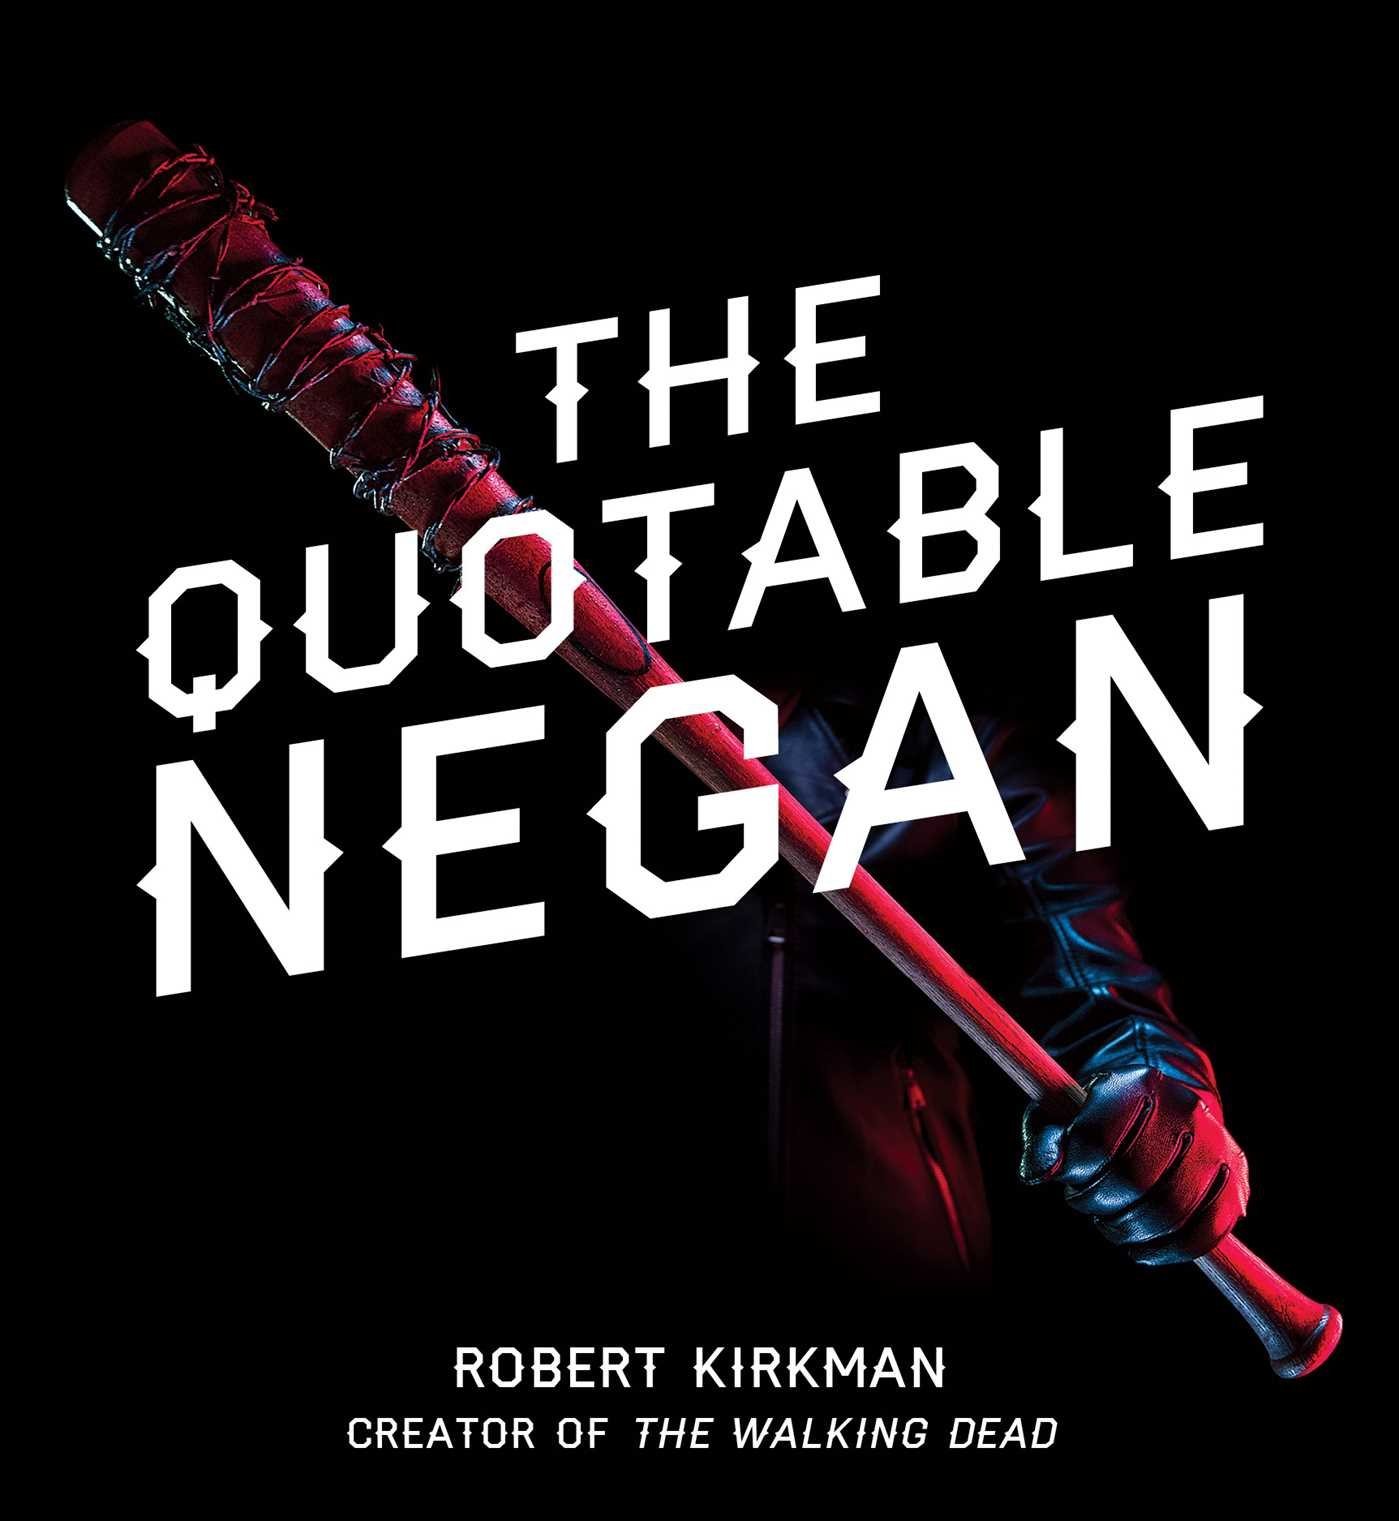 Download The Quotable Negan: Warped Witticisms And Obscene Observations From The Walking Dead's Most Iconic Villain 